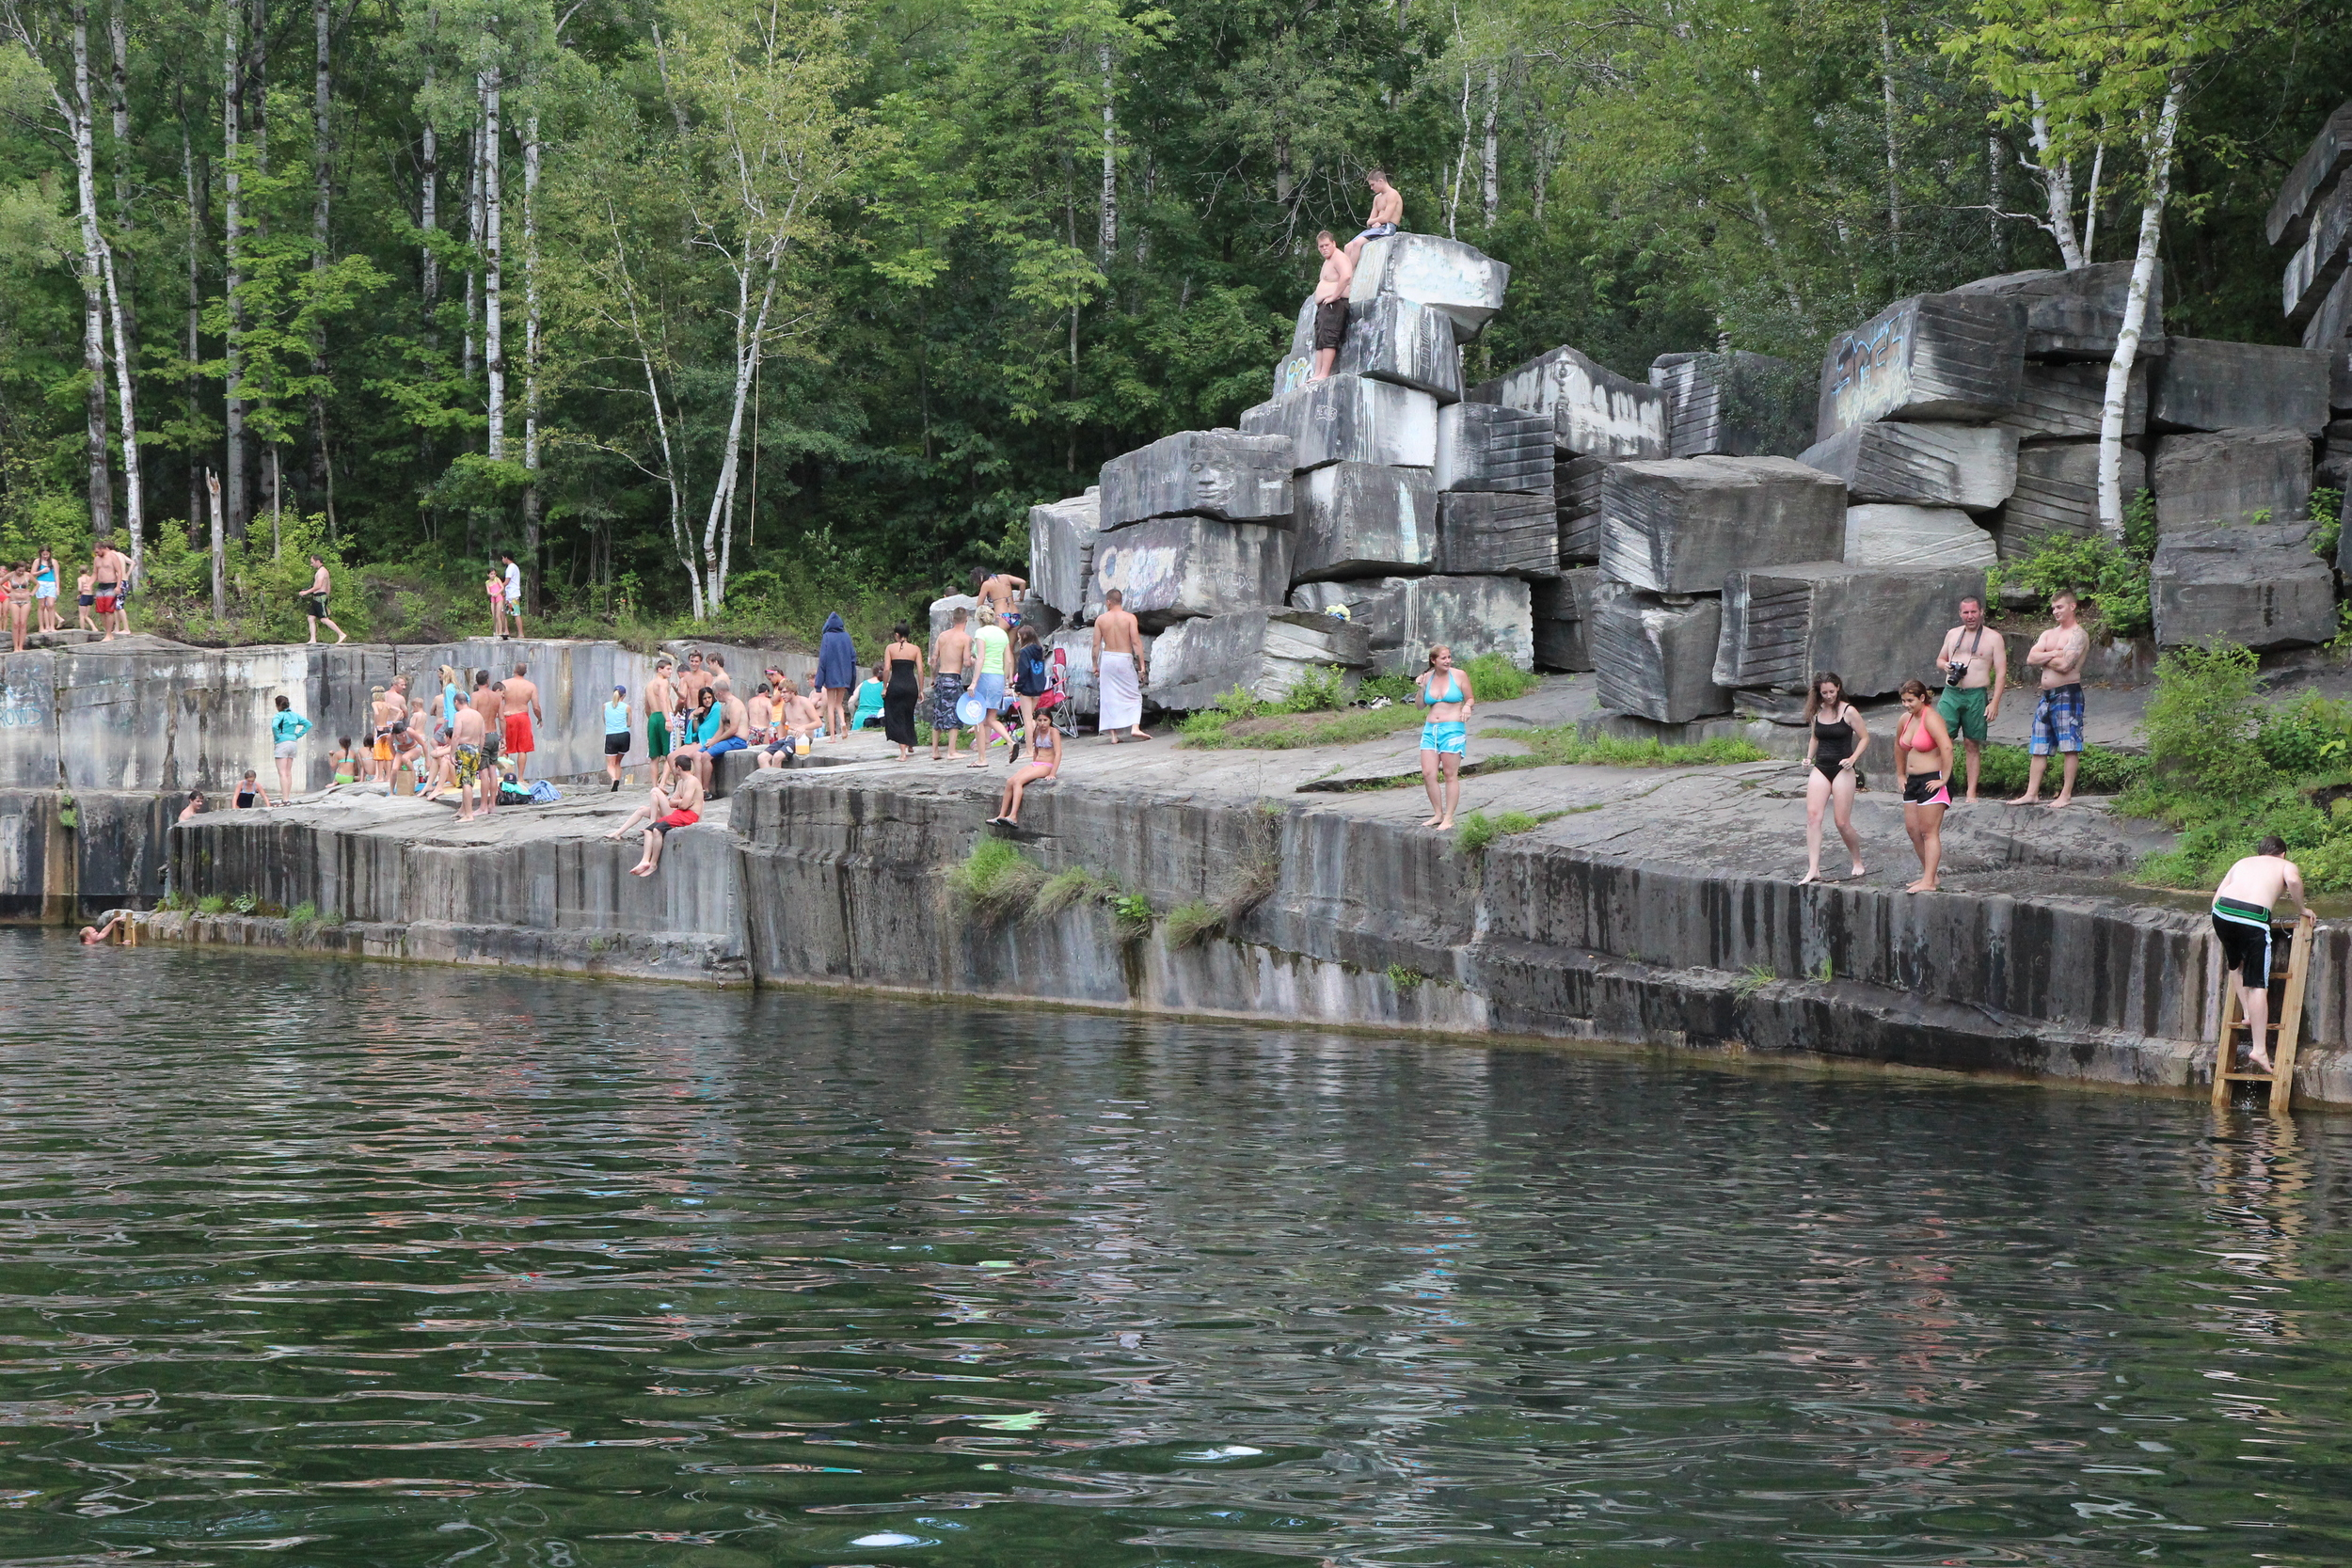 Summer at the Dorset Marble Quarry